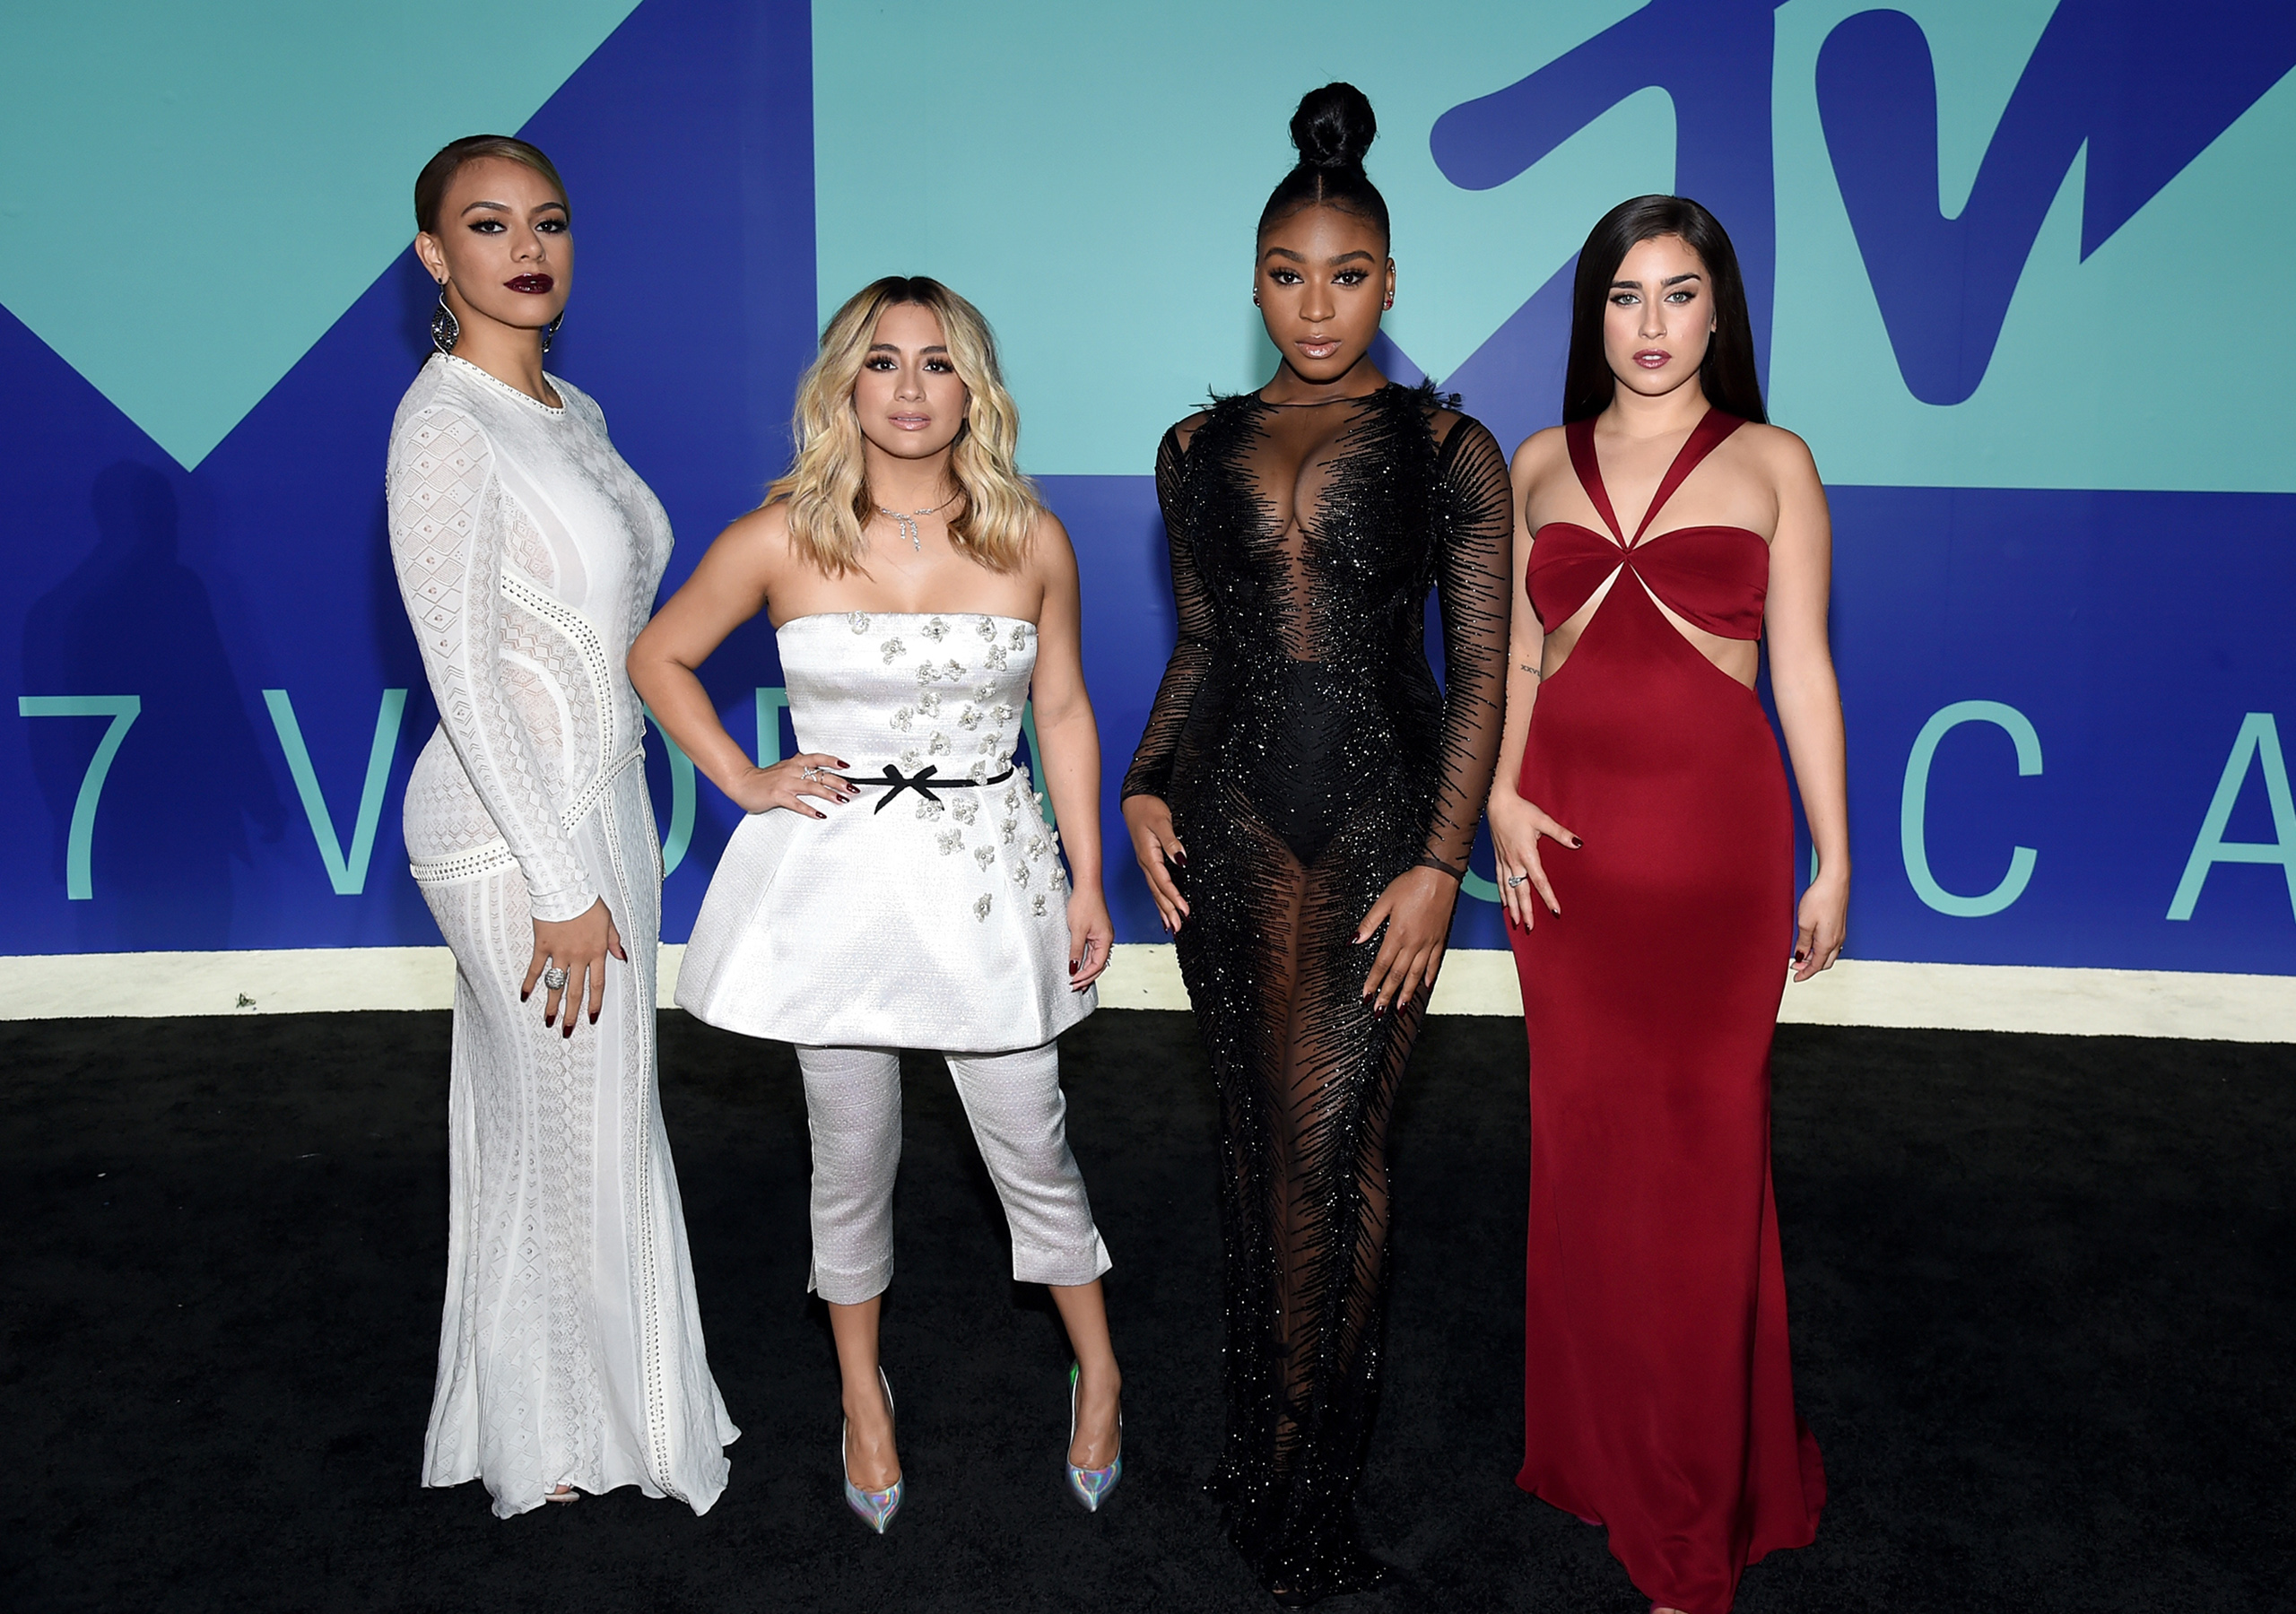 Dinah Jane, Ally Brooke, Normani Kordei, and Lauren Jauregui of Fifth Harmony attend the 2017 MTV Video Music Awards at The Forum on August 27, 2017 in Inglewood, California.